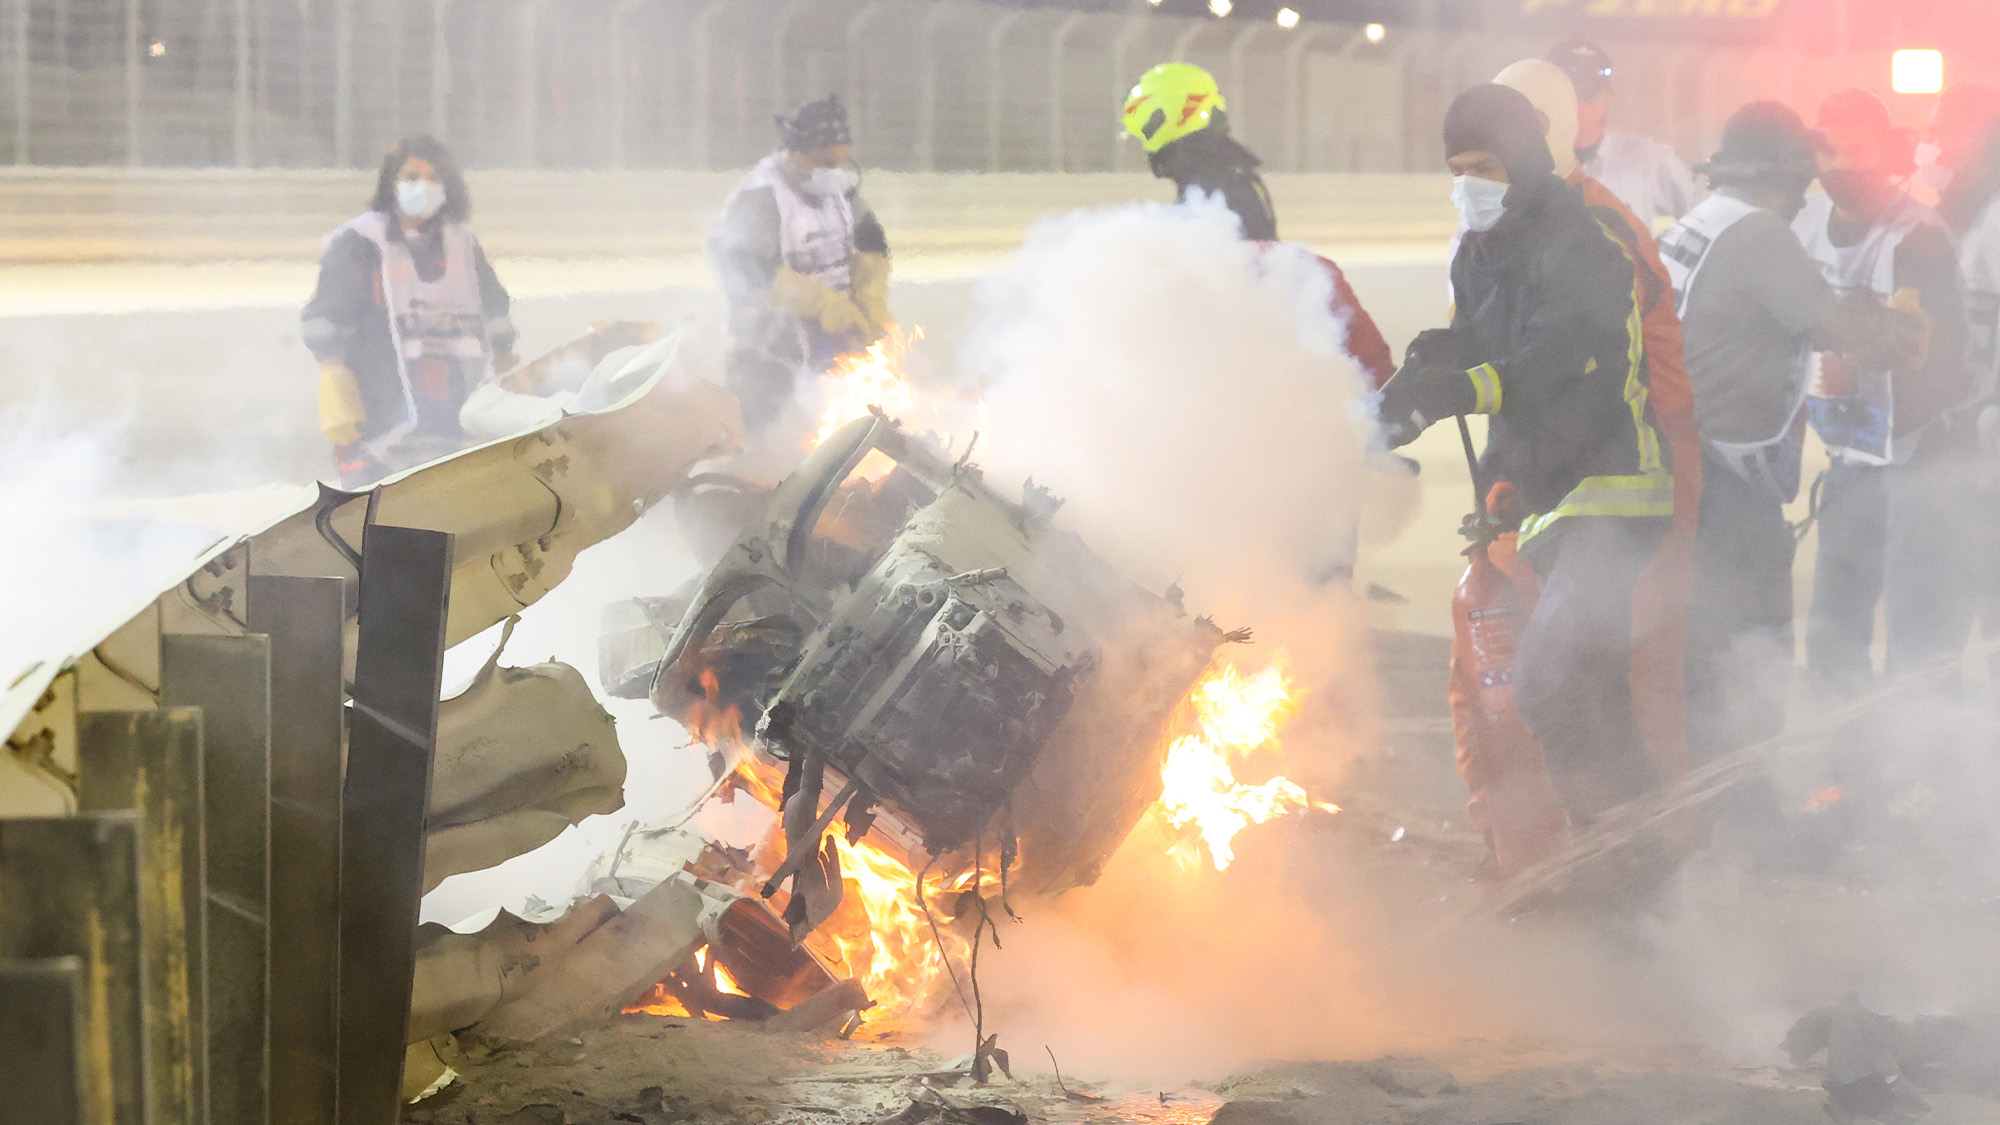 The front part of Romain Grosjean's wrecked Haas on fire and embedded in the barrier